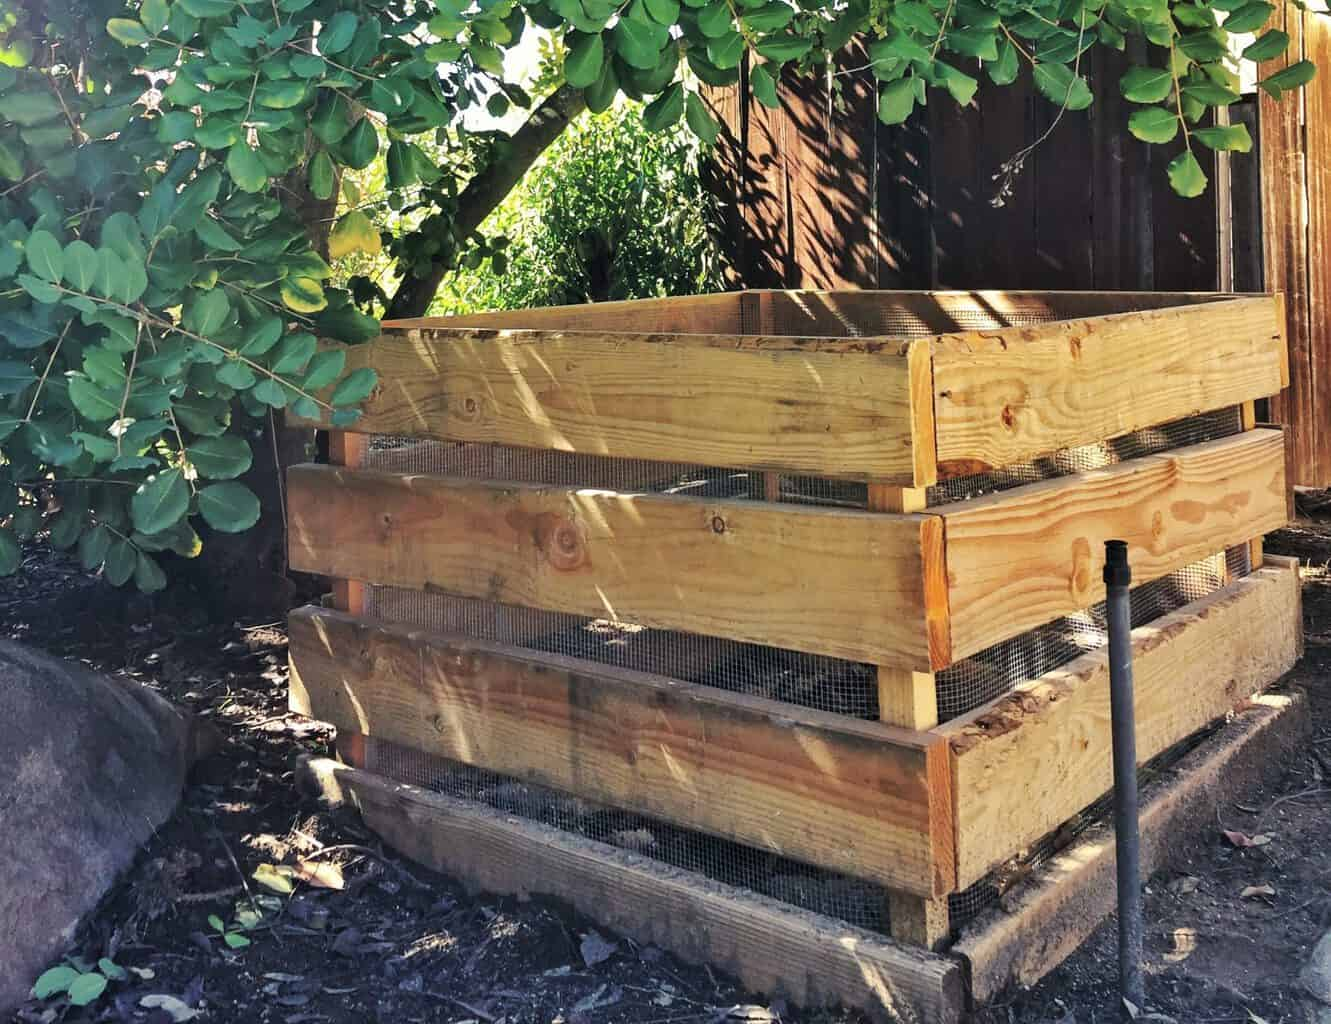 A completed home DIY compost bin in a yard